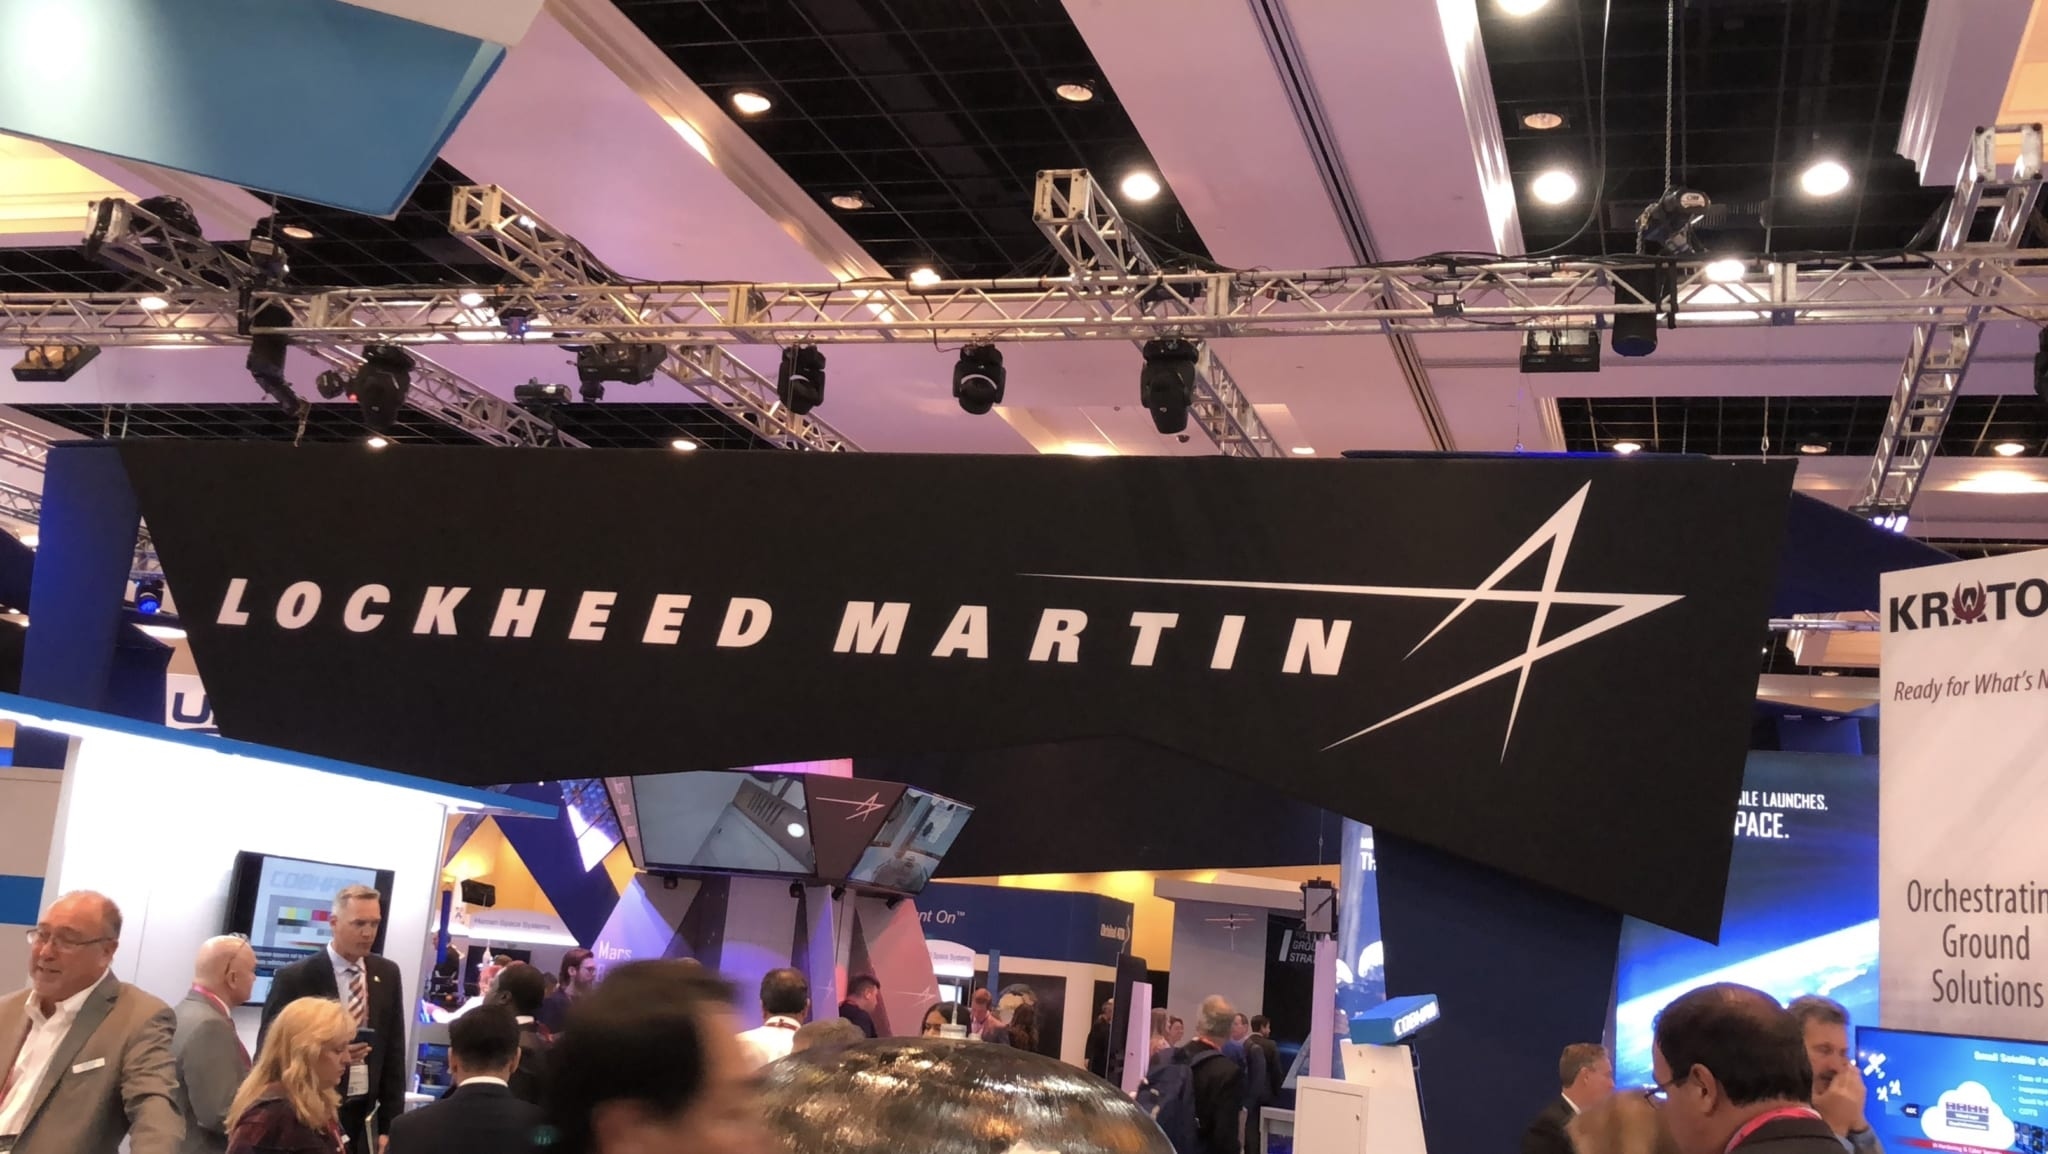 IMage Lockheed Martin at the 34th Space Symposium in 2018 (Photo: Don Martinez, Lima Charlie News